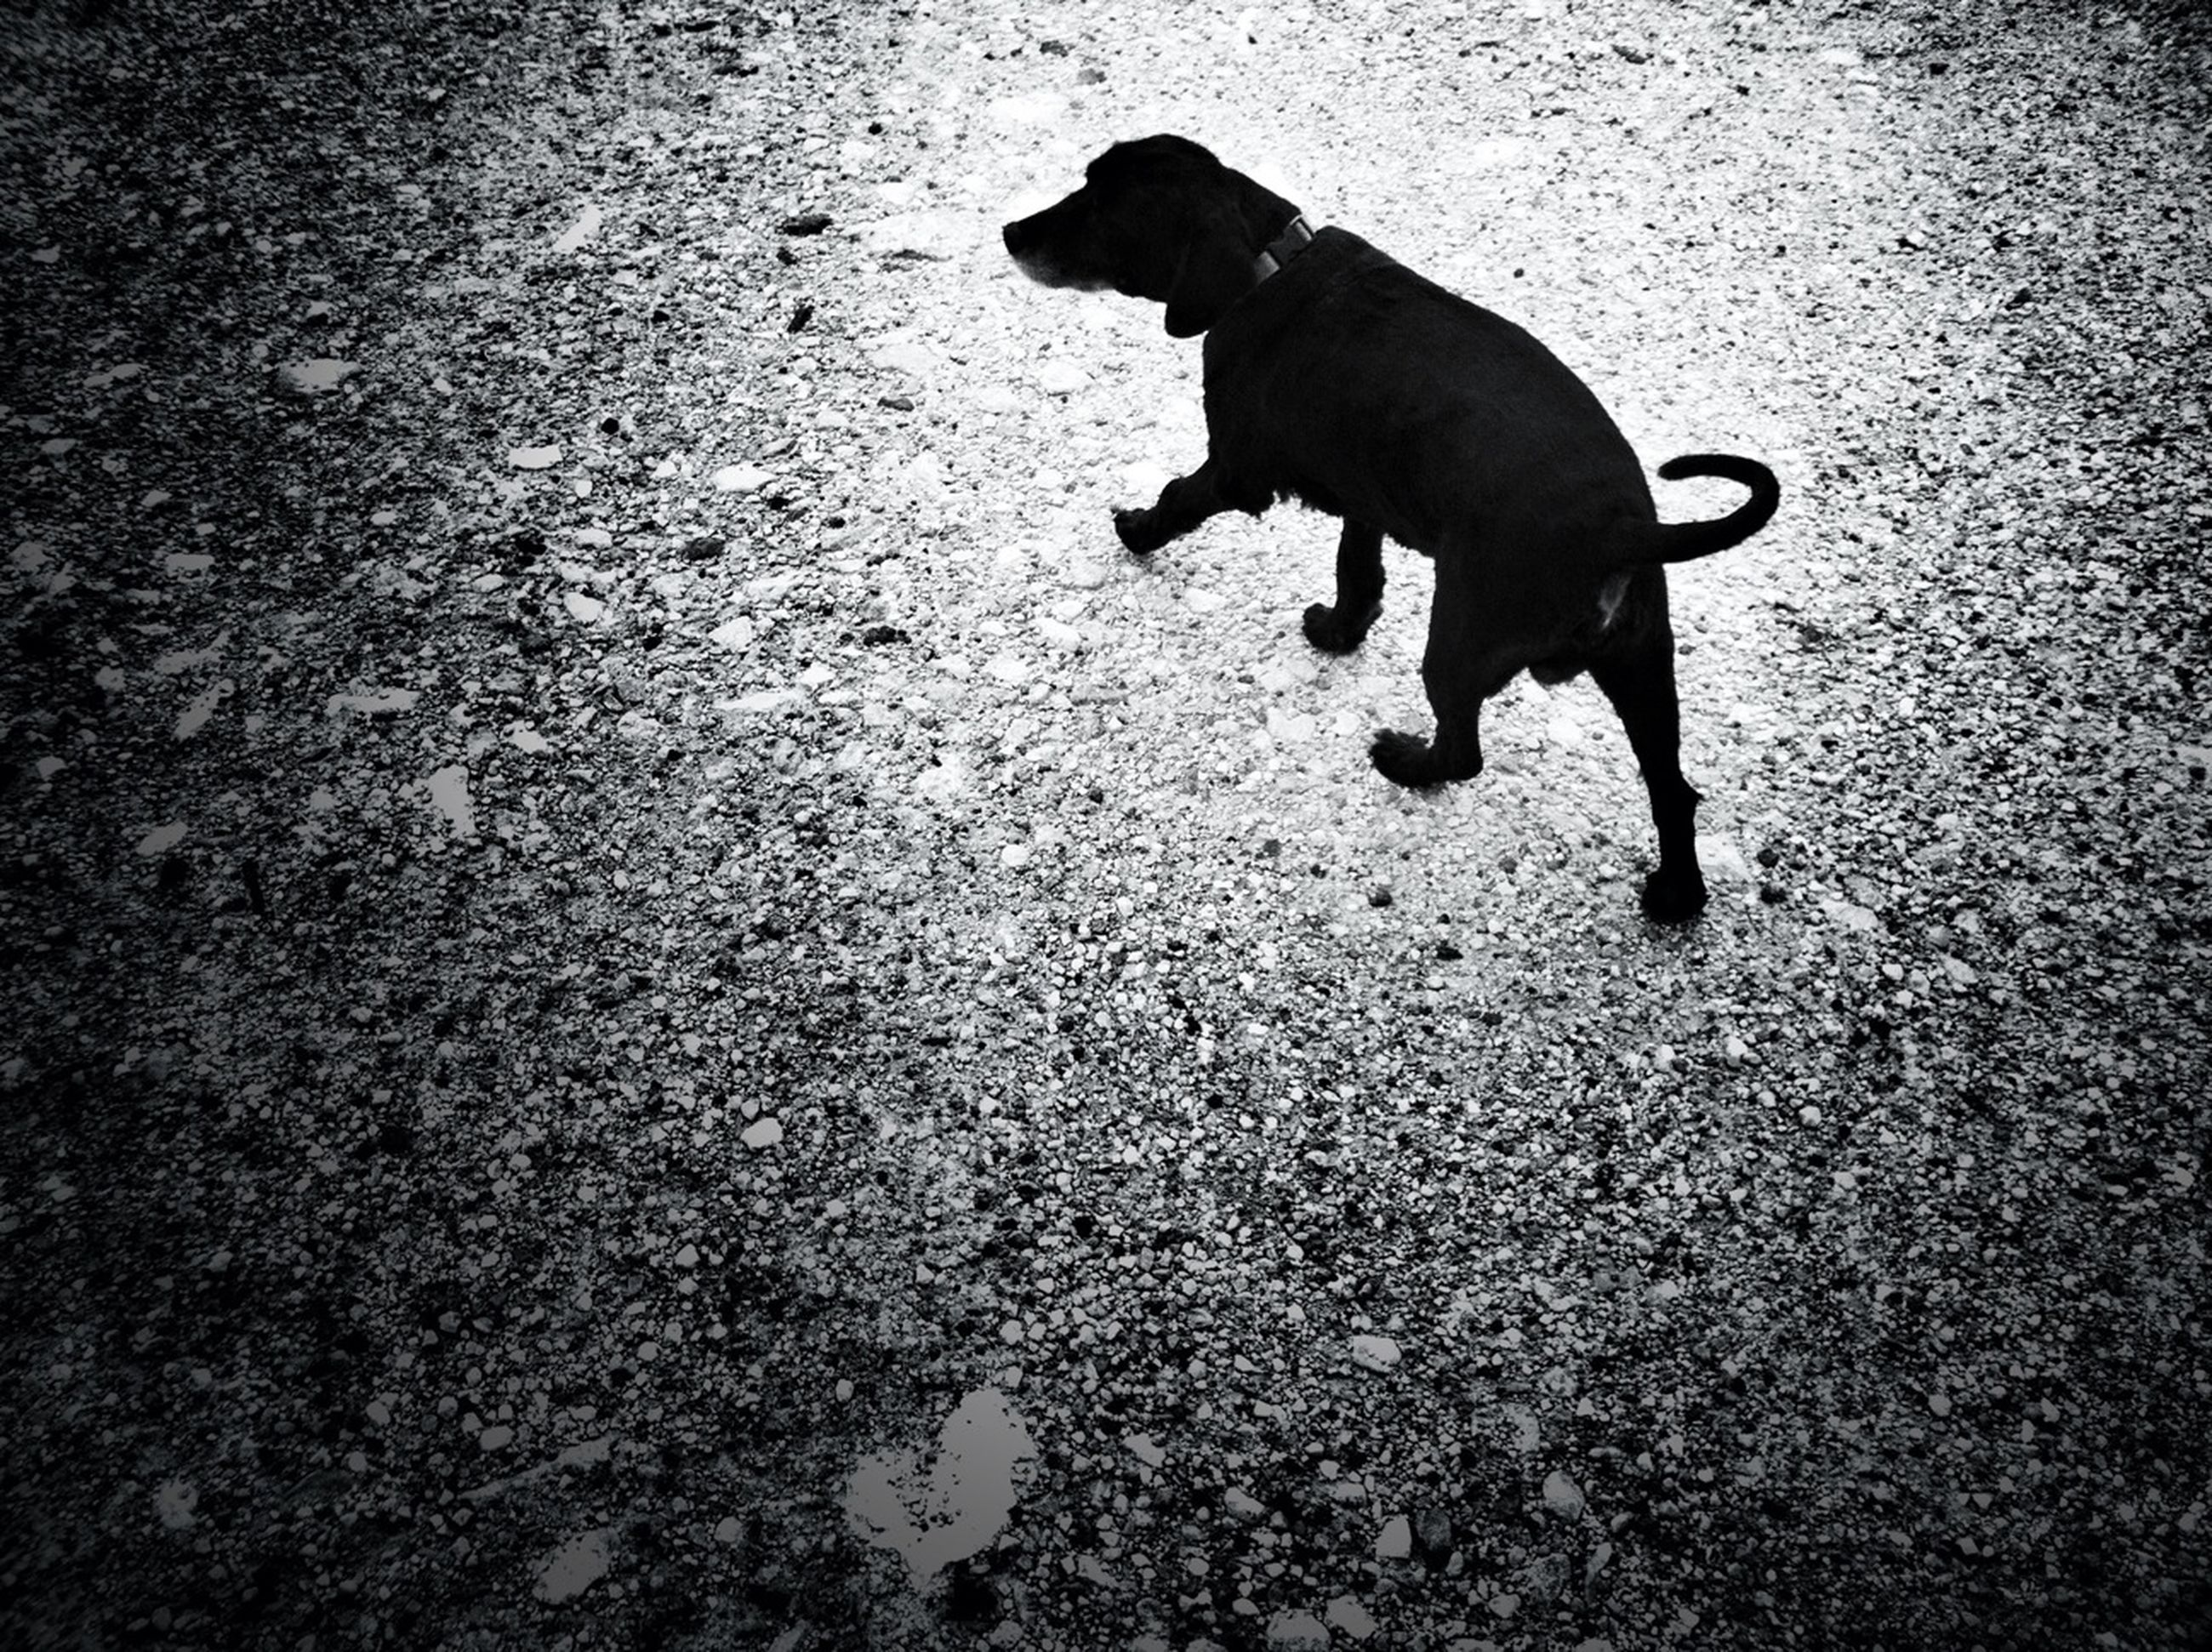 pets, domestic animals, animal themes, one animal, dog, mammal, high angle view, street, shadow, full length, black color, sunlight, no people, walking, pet leash, domestic cat, zoology, day, pet collar, canine